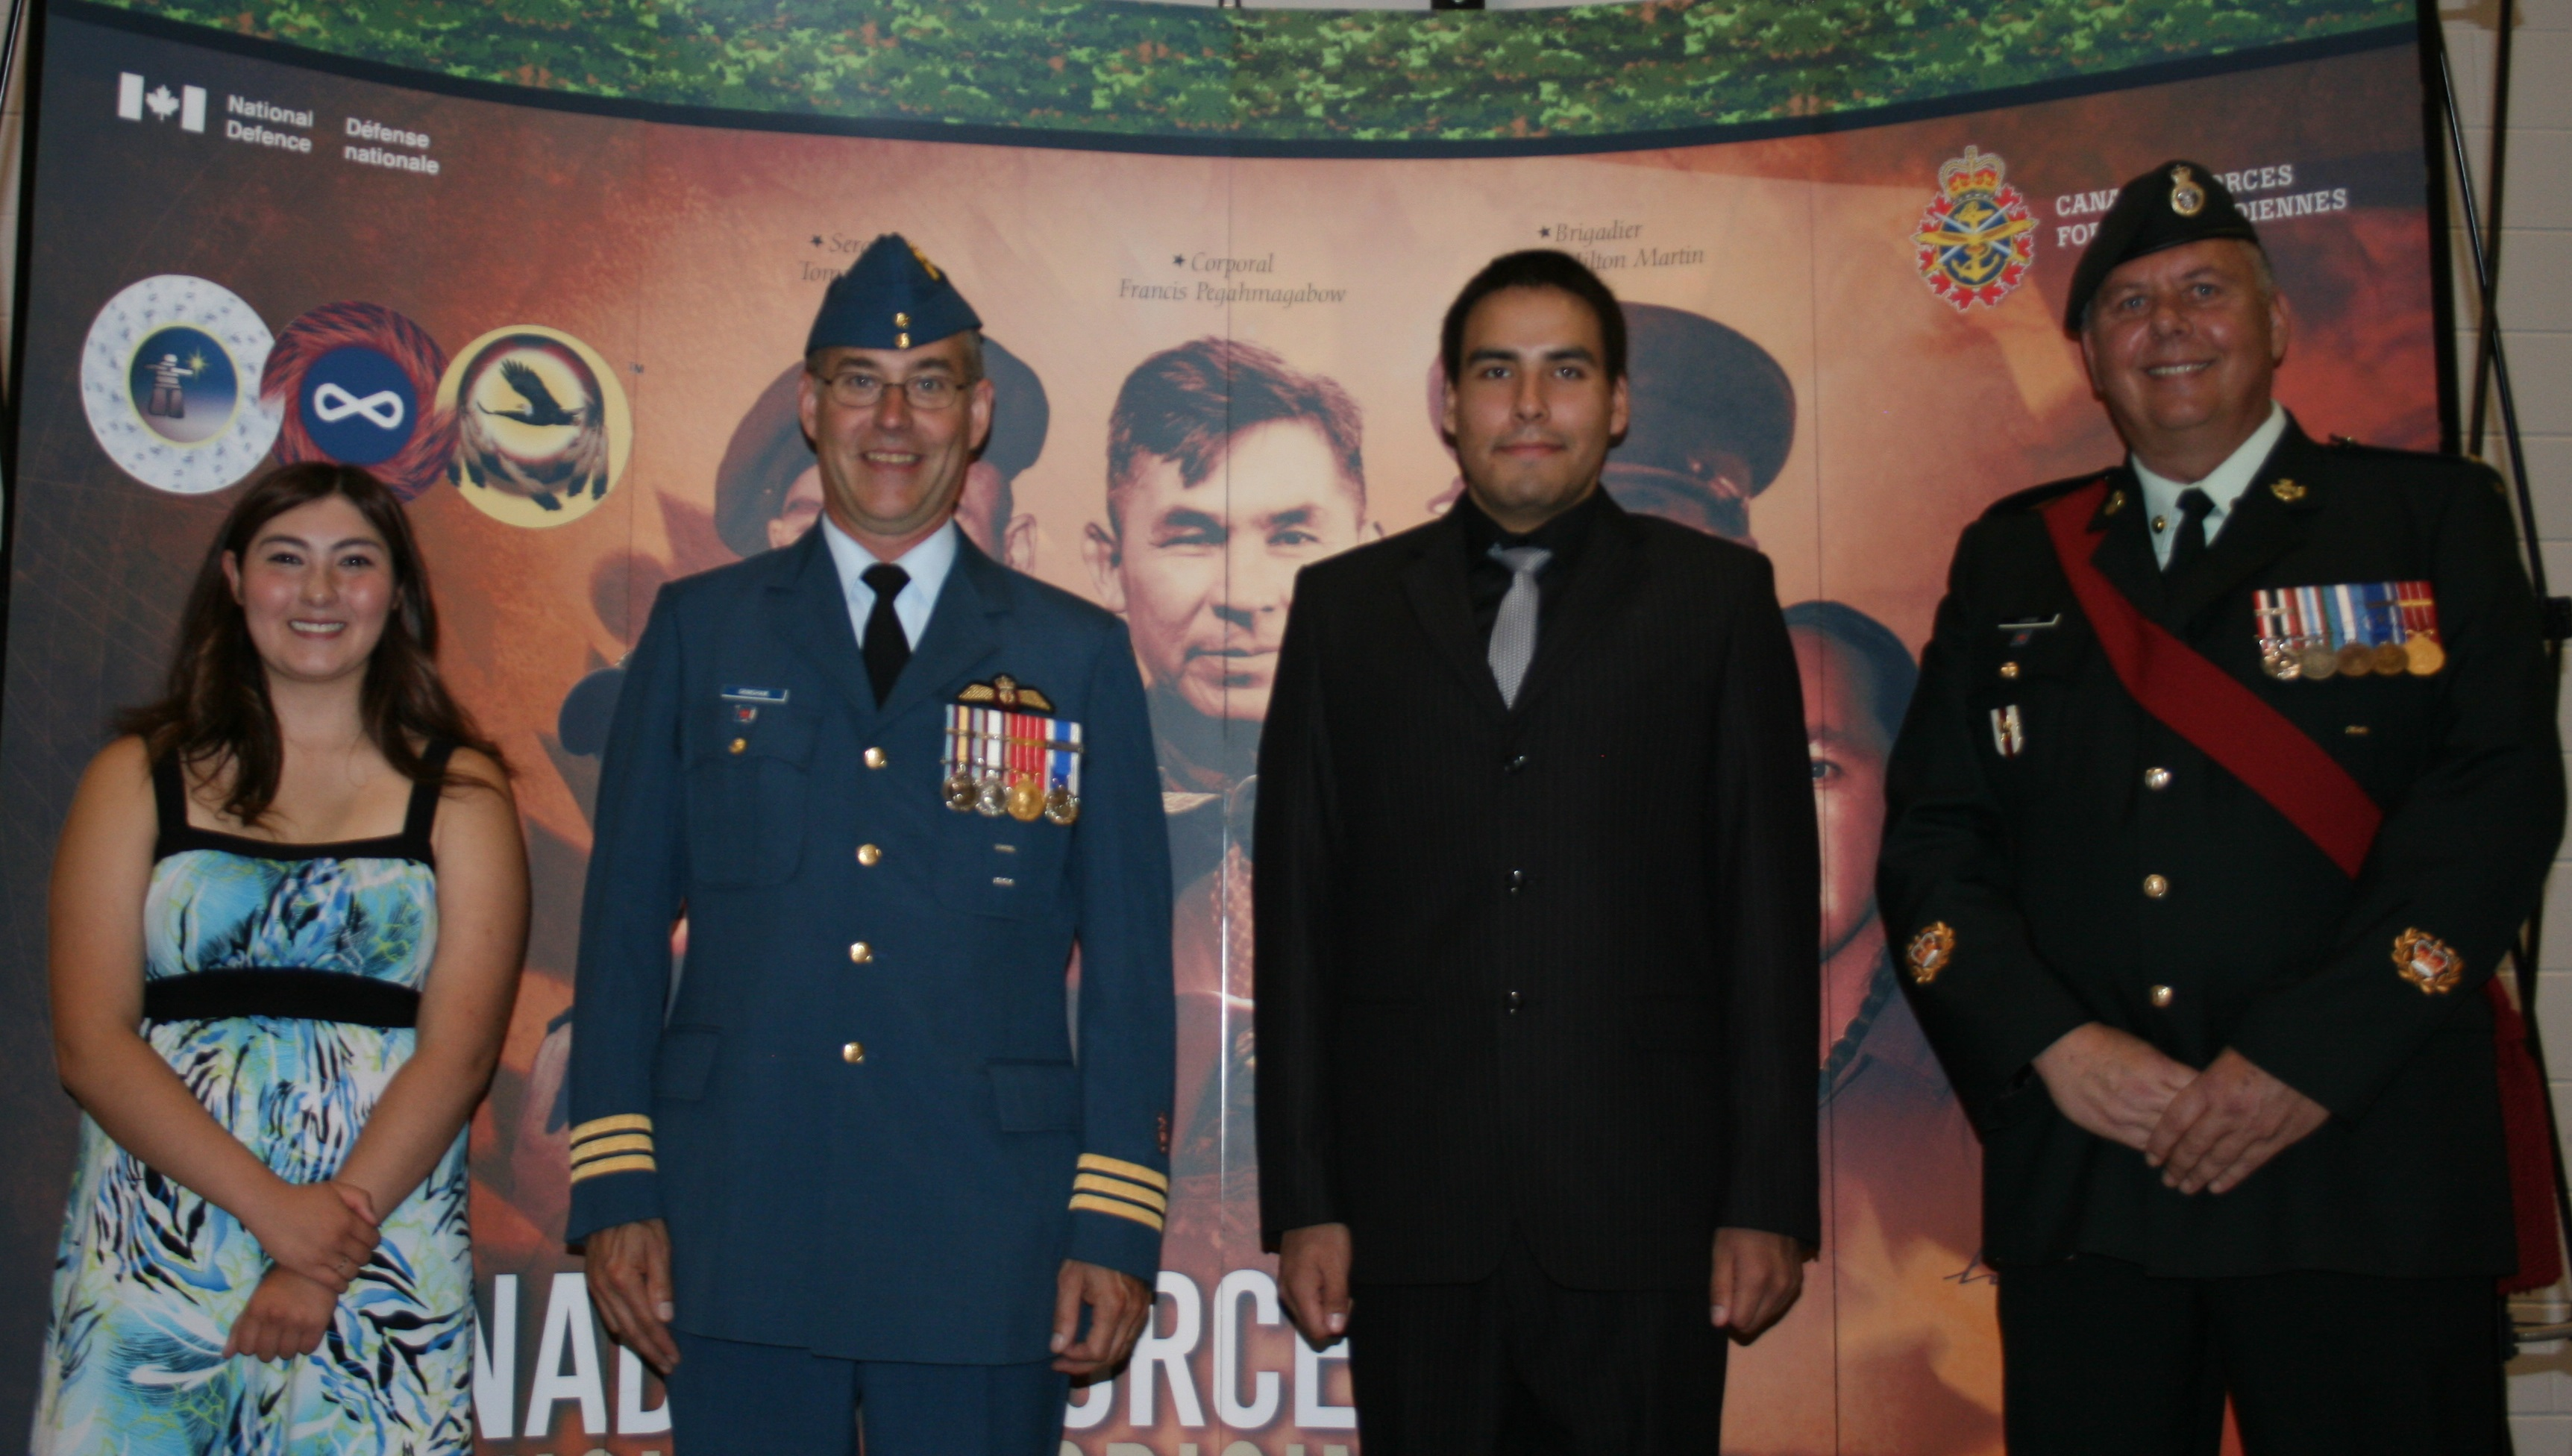 Master Warrant Officer Paul Lucas (far right) in 2013 with Officer Cadets Cassandra Lemon and Nick Courchene, two participants of the Aboriginal Leadership Opportunity Year (ALOY), and Lieutenant-Colonel Douglas Grimshaw. MWO Lucas was awarded the Meritorious Service Medal in 2016 for his outstanding work as a recruiter, where he focuses on Aboriginal communities. The ALOY program offers Aboriginal students the opportunity to experience military training and Aboriginal cultural activities. Photo supplied by: MWO Paul Lucas